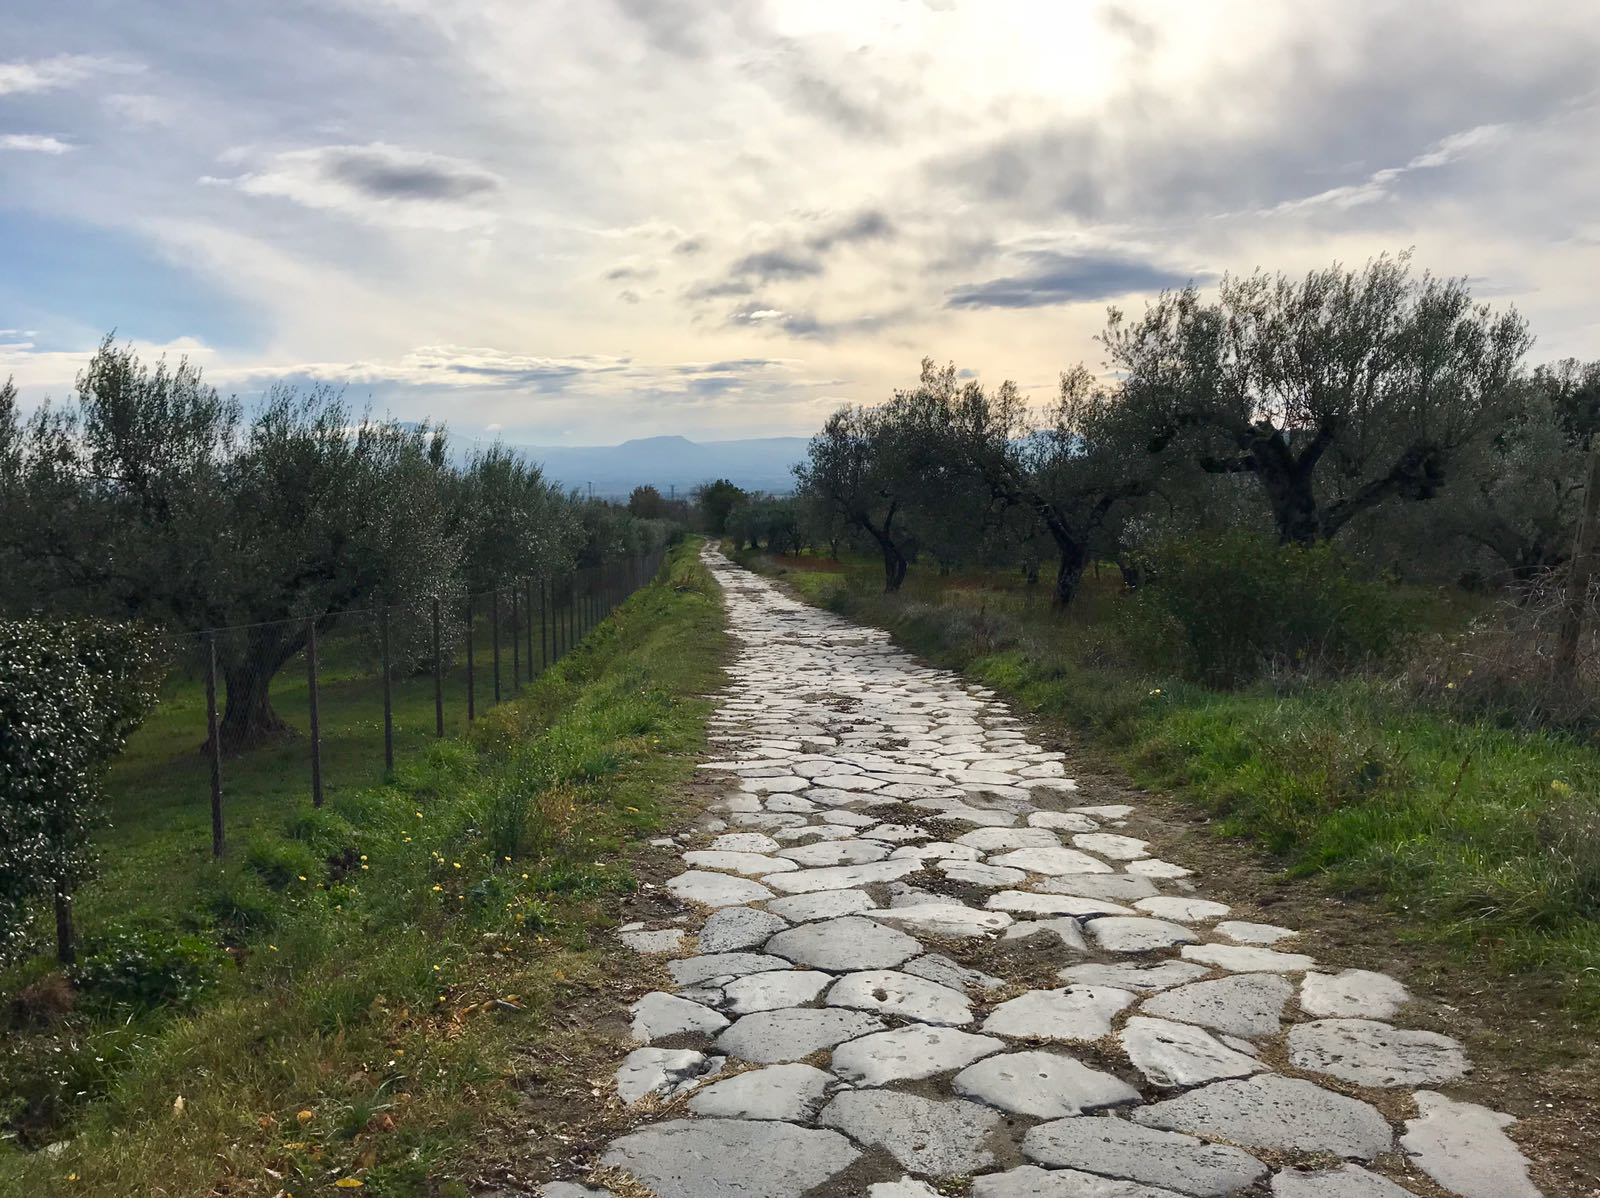 Roman road made up of large flat stones